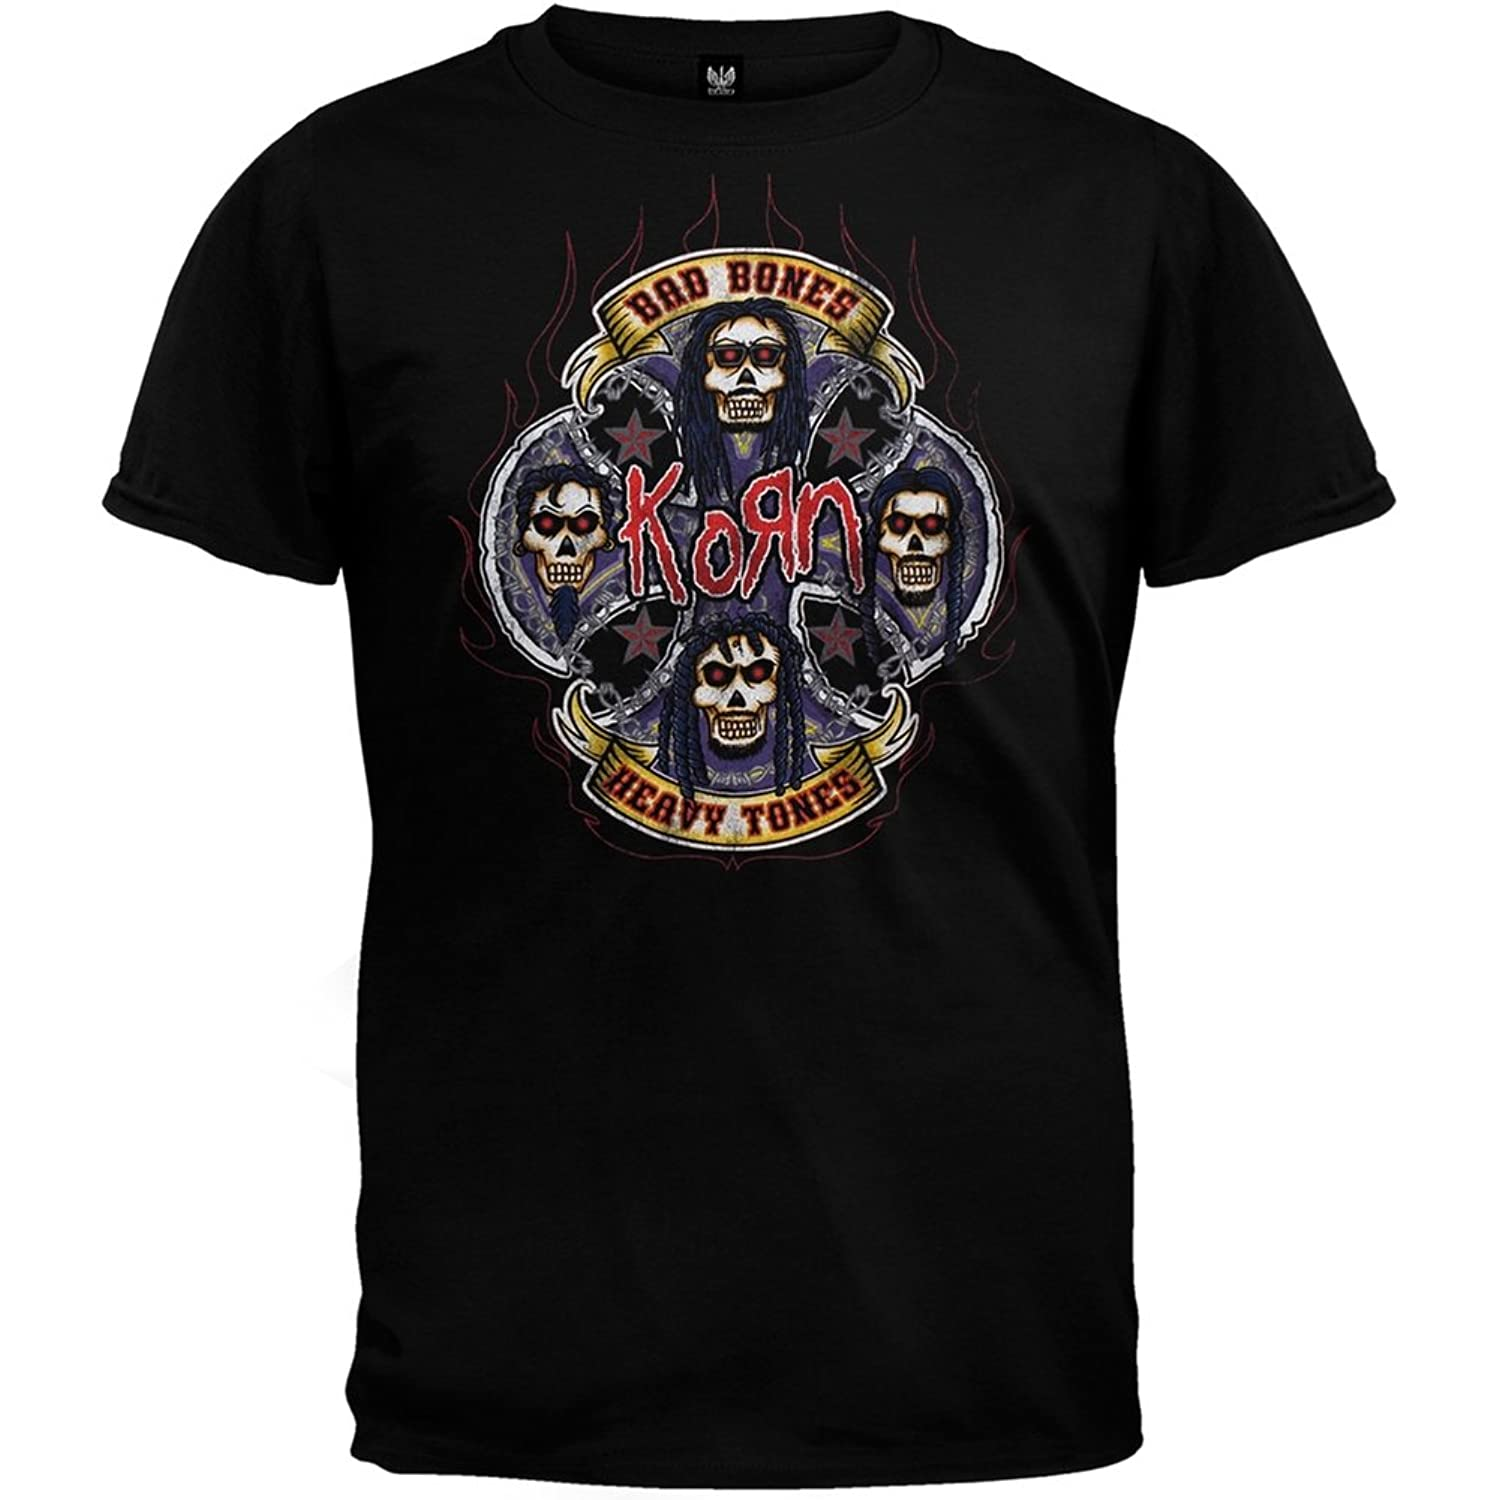 Korn - Bad Bones 06 Tour T-Shirt